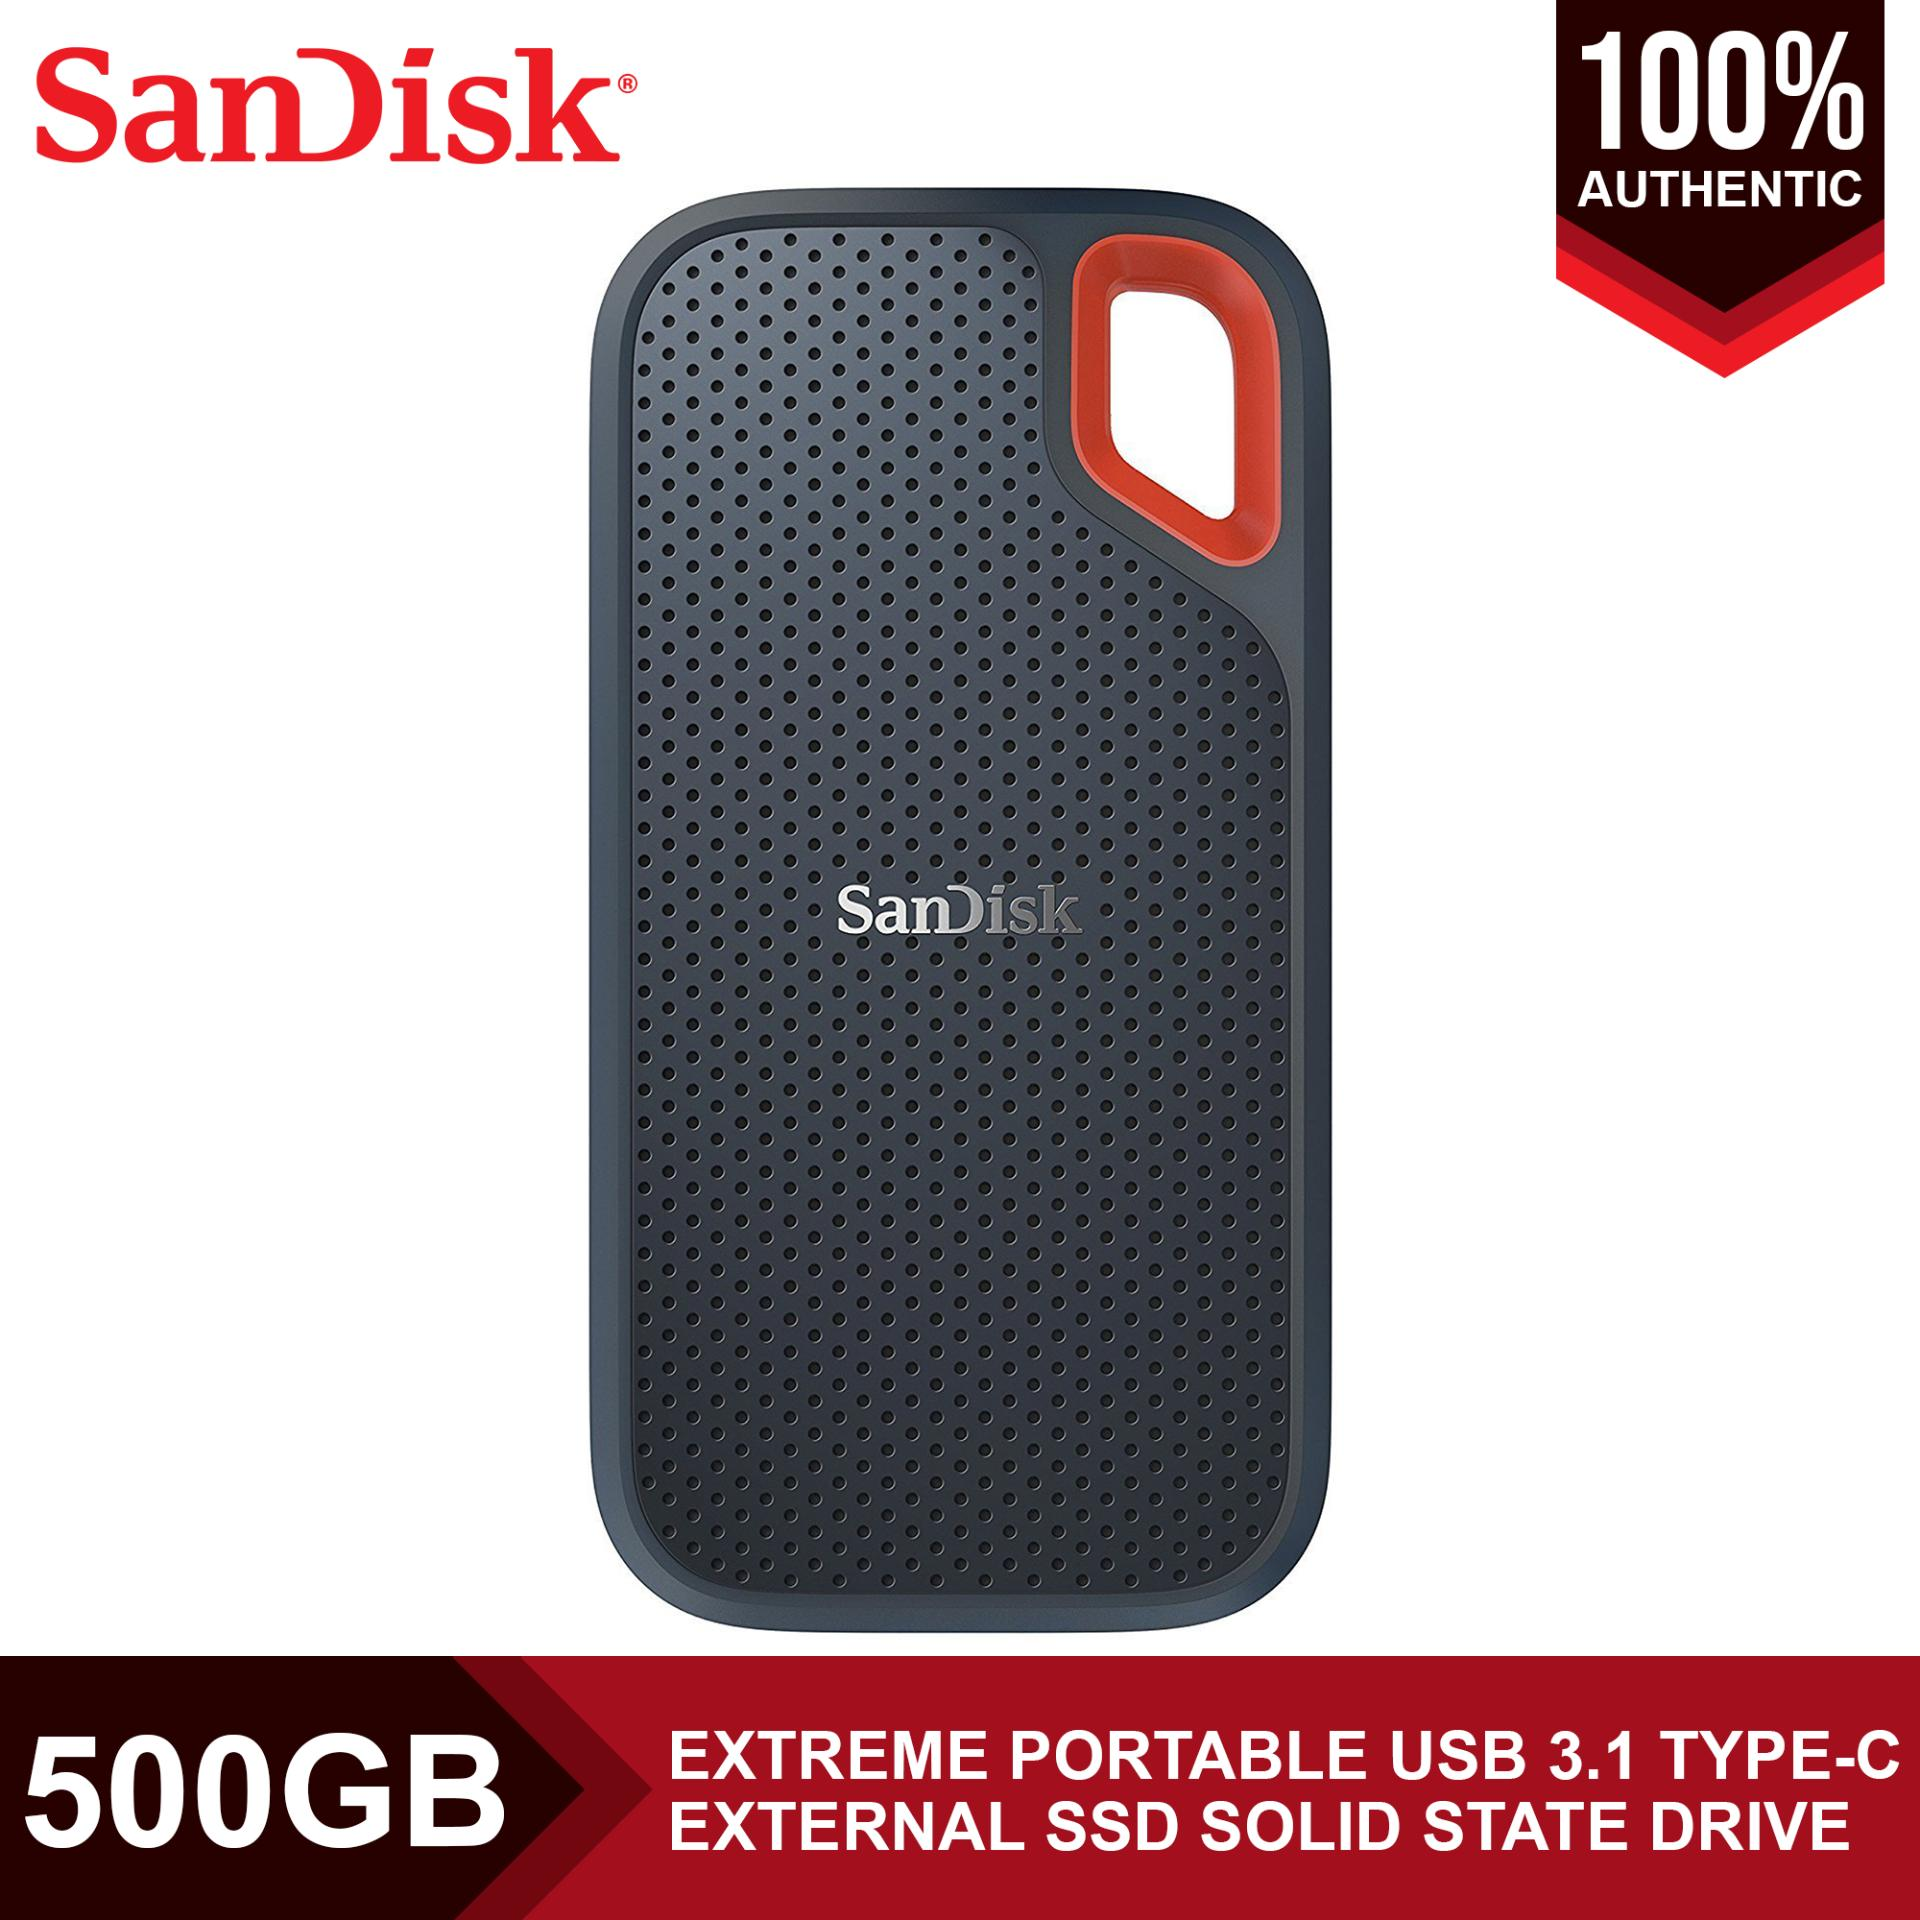 SDSSDE60-500G-G25 SanDisk Extreme Portable SSD External Solid State Drive 500GB